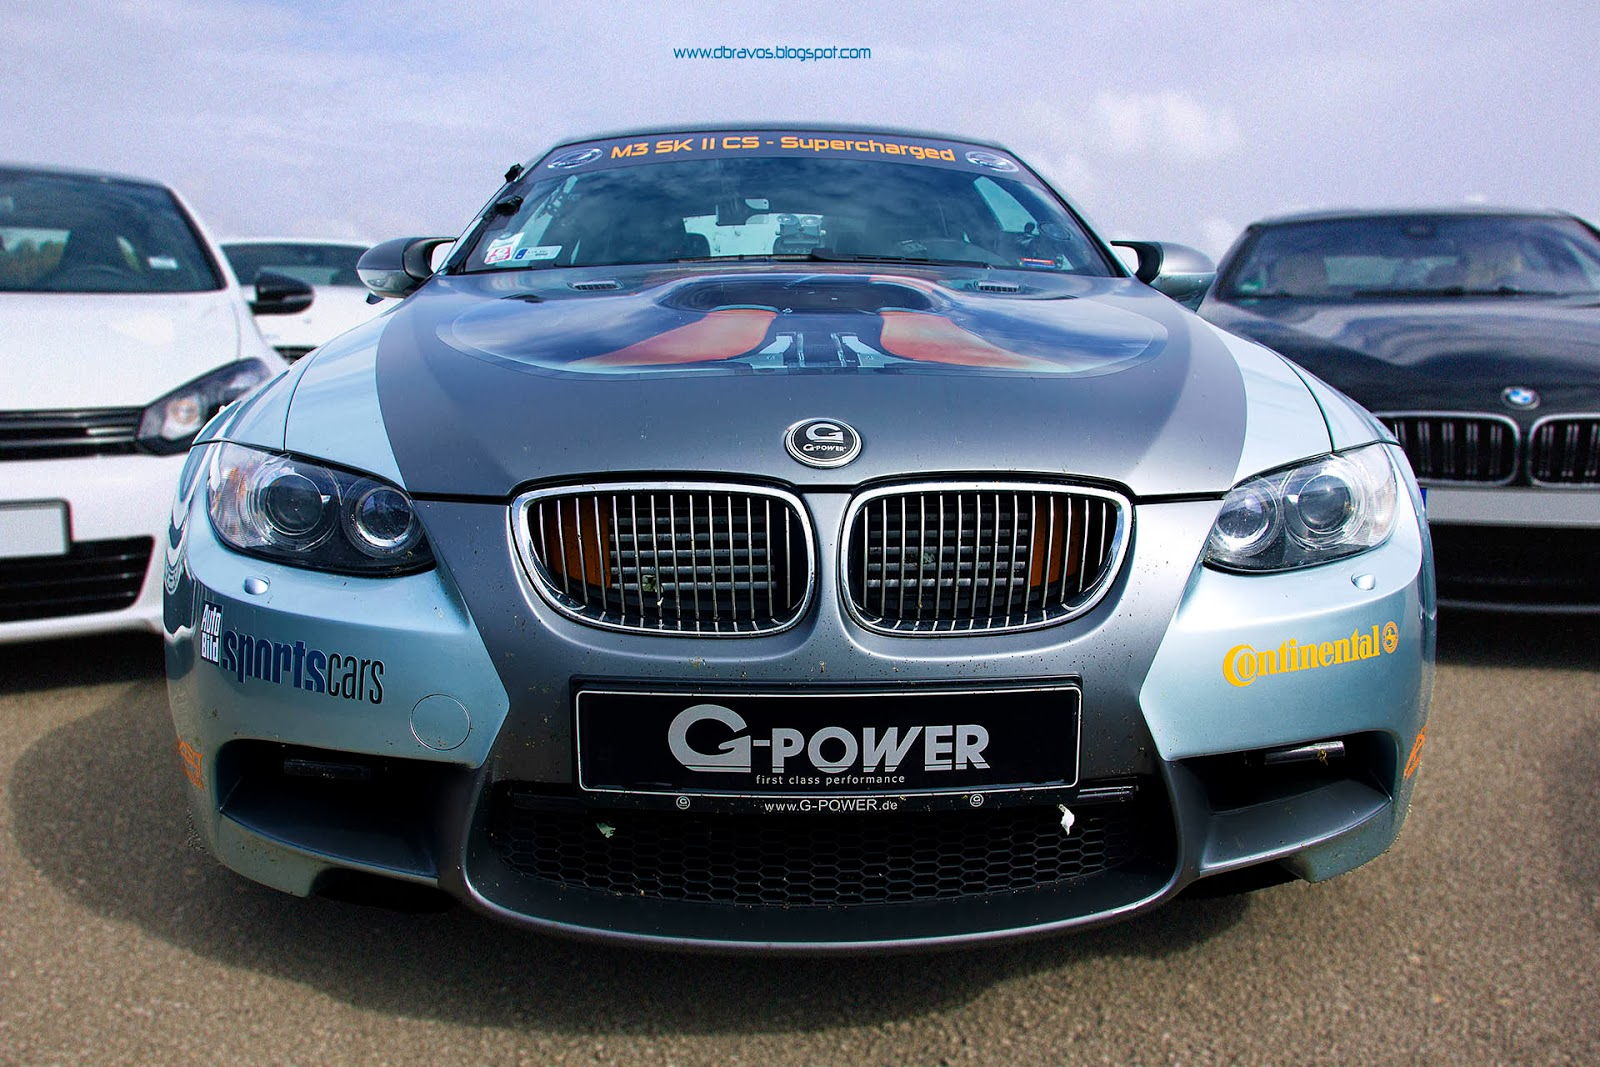 G POWER Breaks Own Record For Fastest BMW M3 V8 With A Top Speed Of 337,6  Km/h And Presents A U201cHURRICANE 337 Editionu201d Called Special Edition Of The  G POWER ...